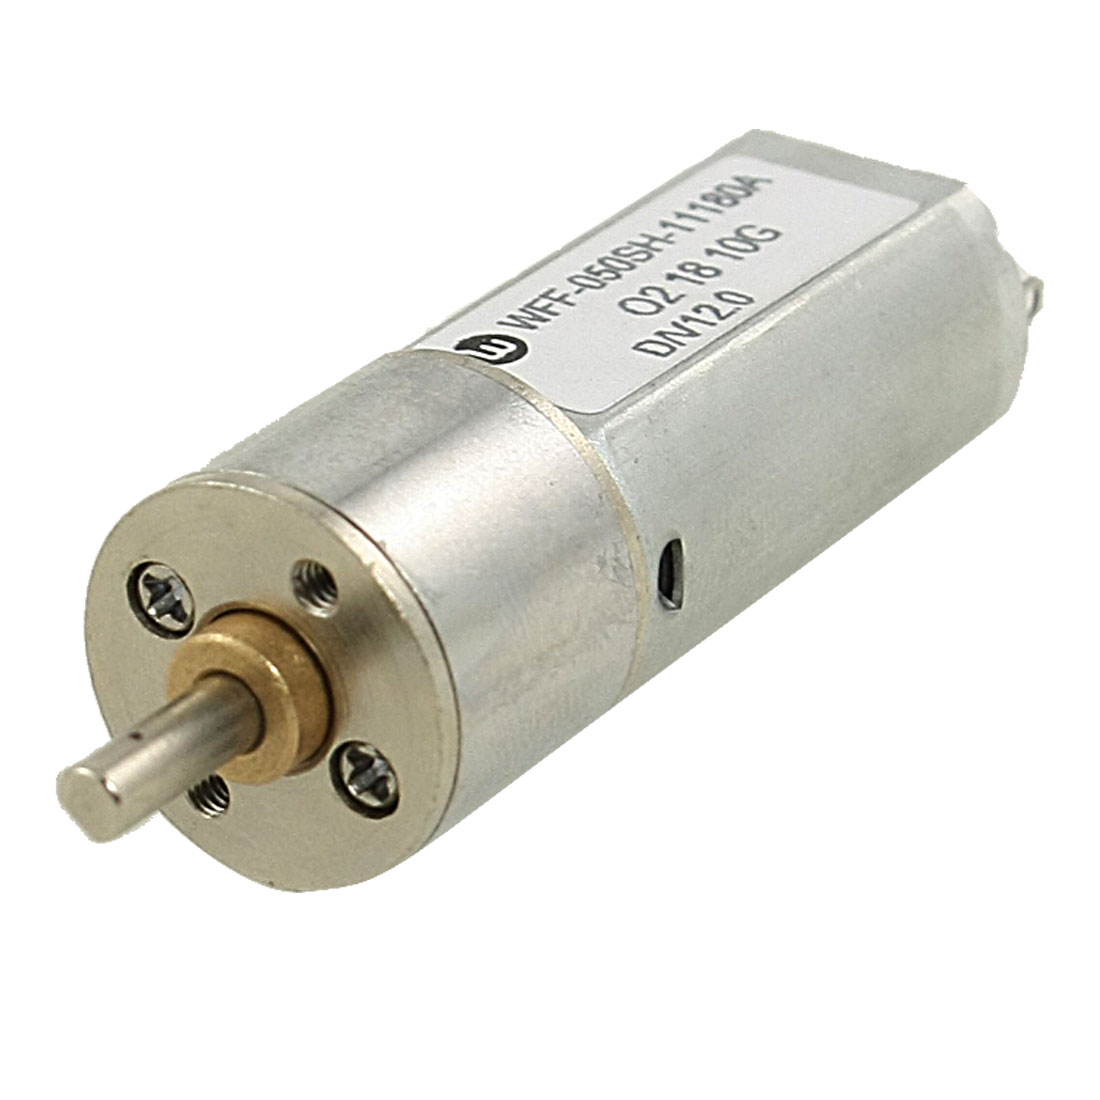 300RPM-12V-0-6A-High-Torque-Mini-Electric-DC-Geared-Motor